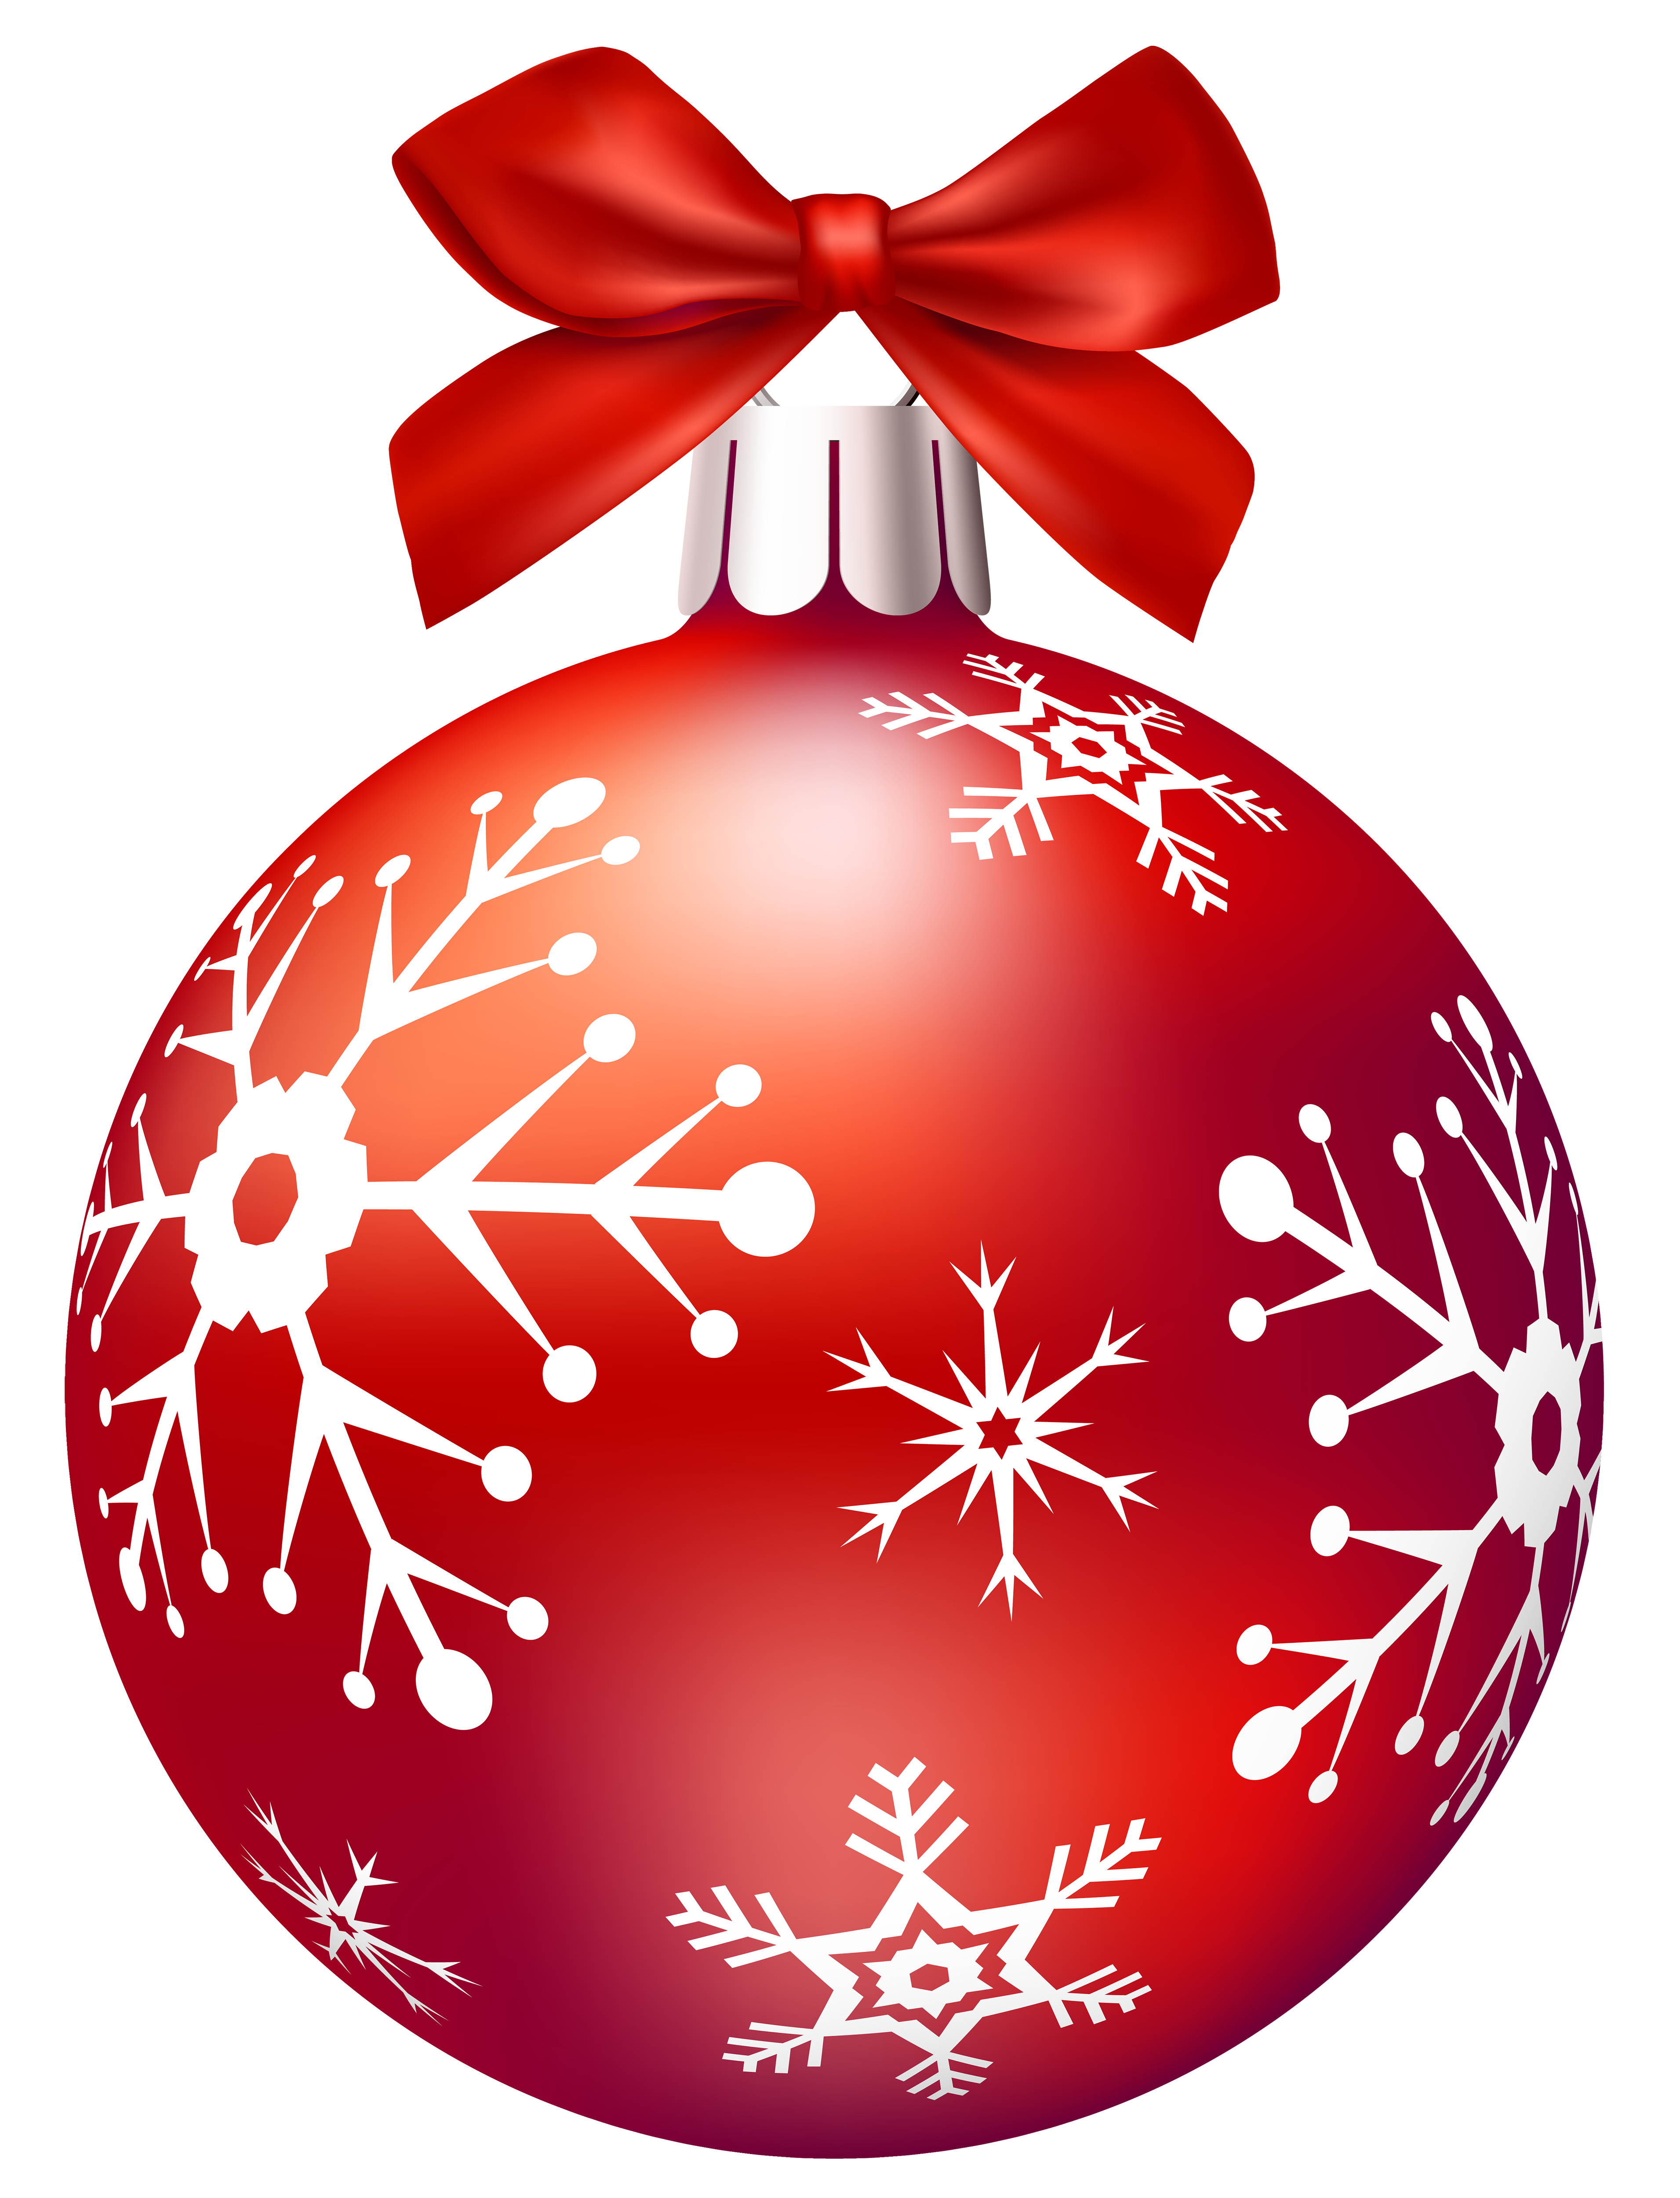 Red Christmas Balls Png Clip Art Best Web Clipart Christmas Drawing Christmas Balls Homemade Christmas Decorations